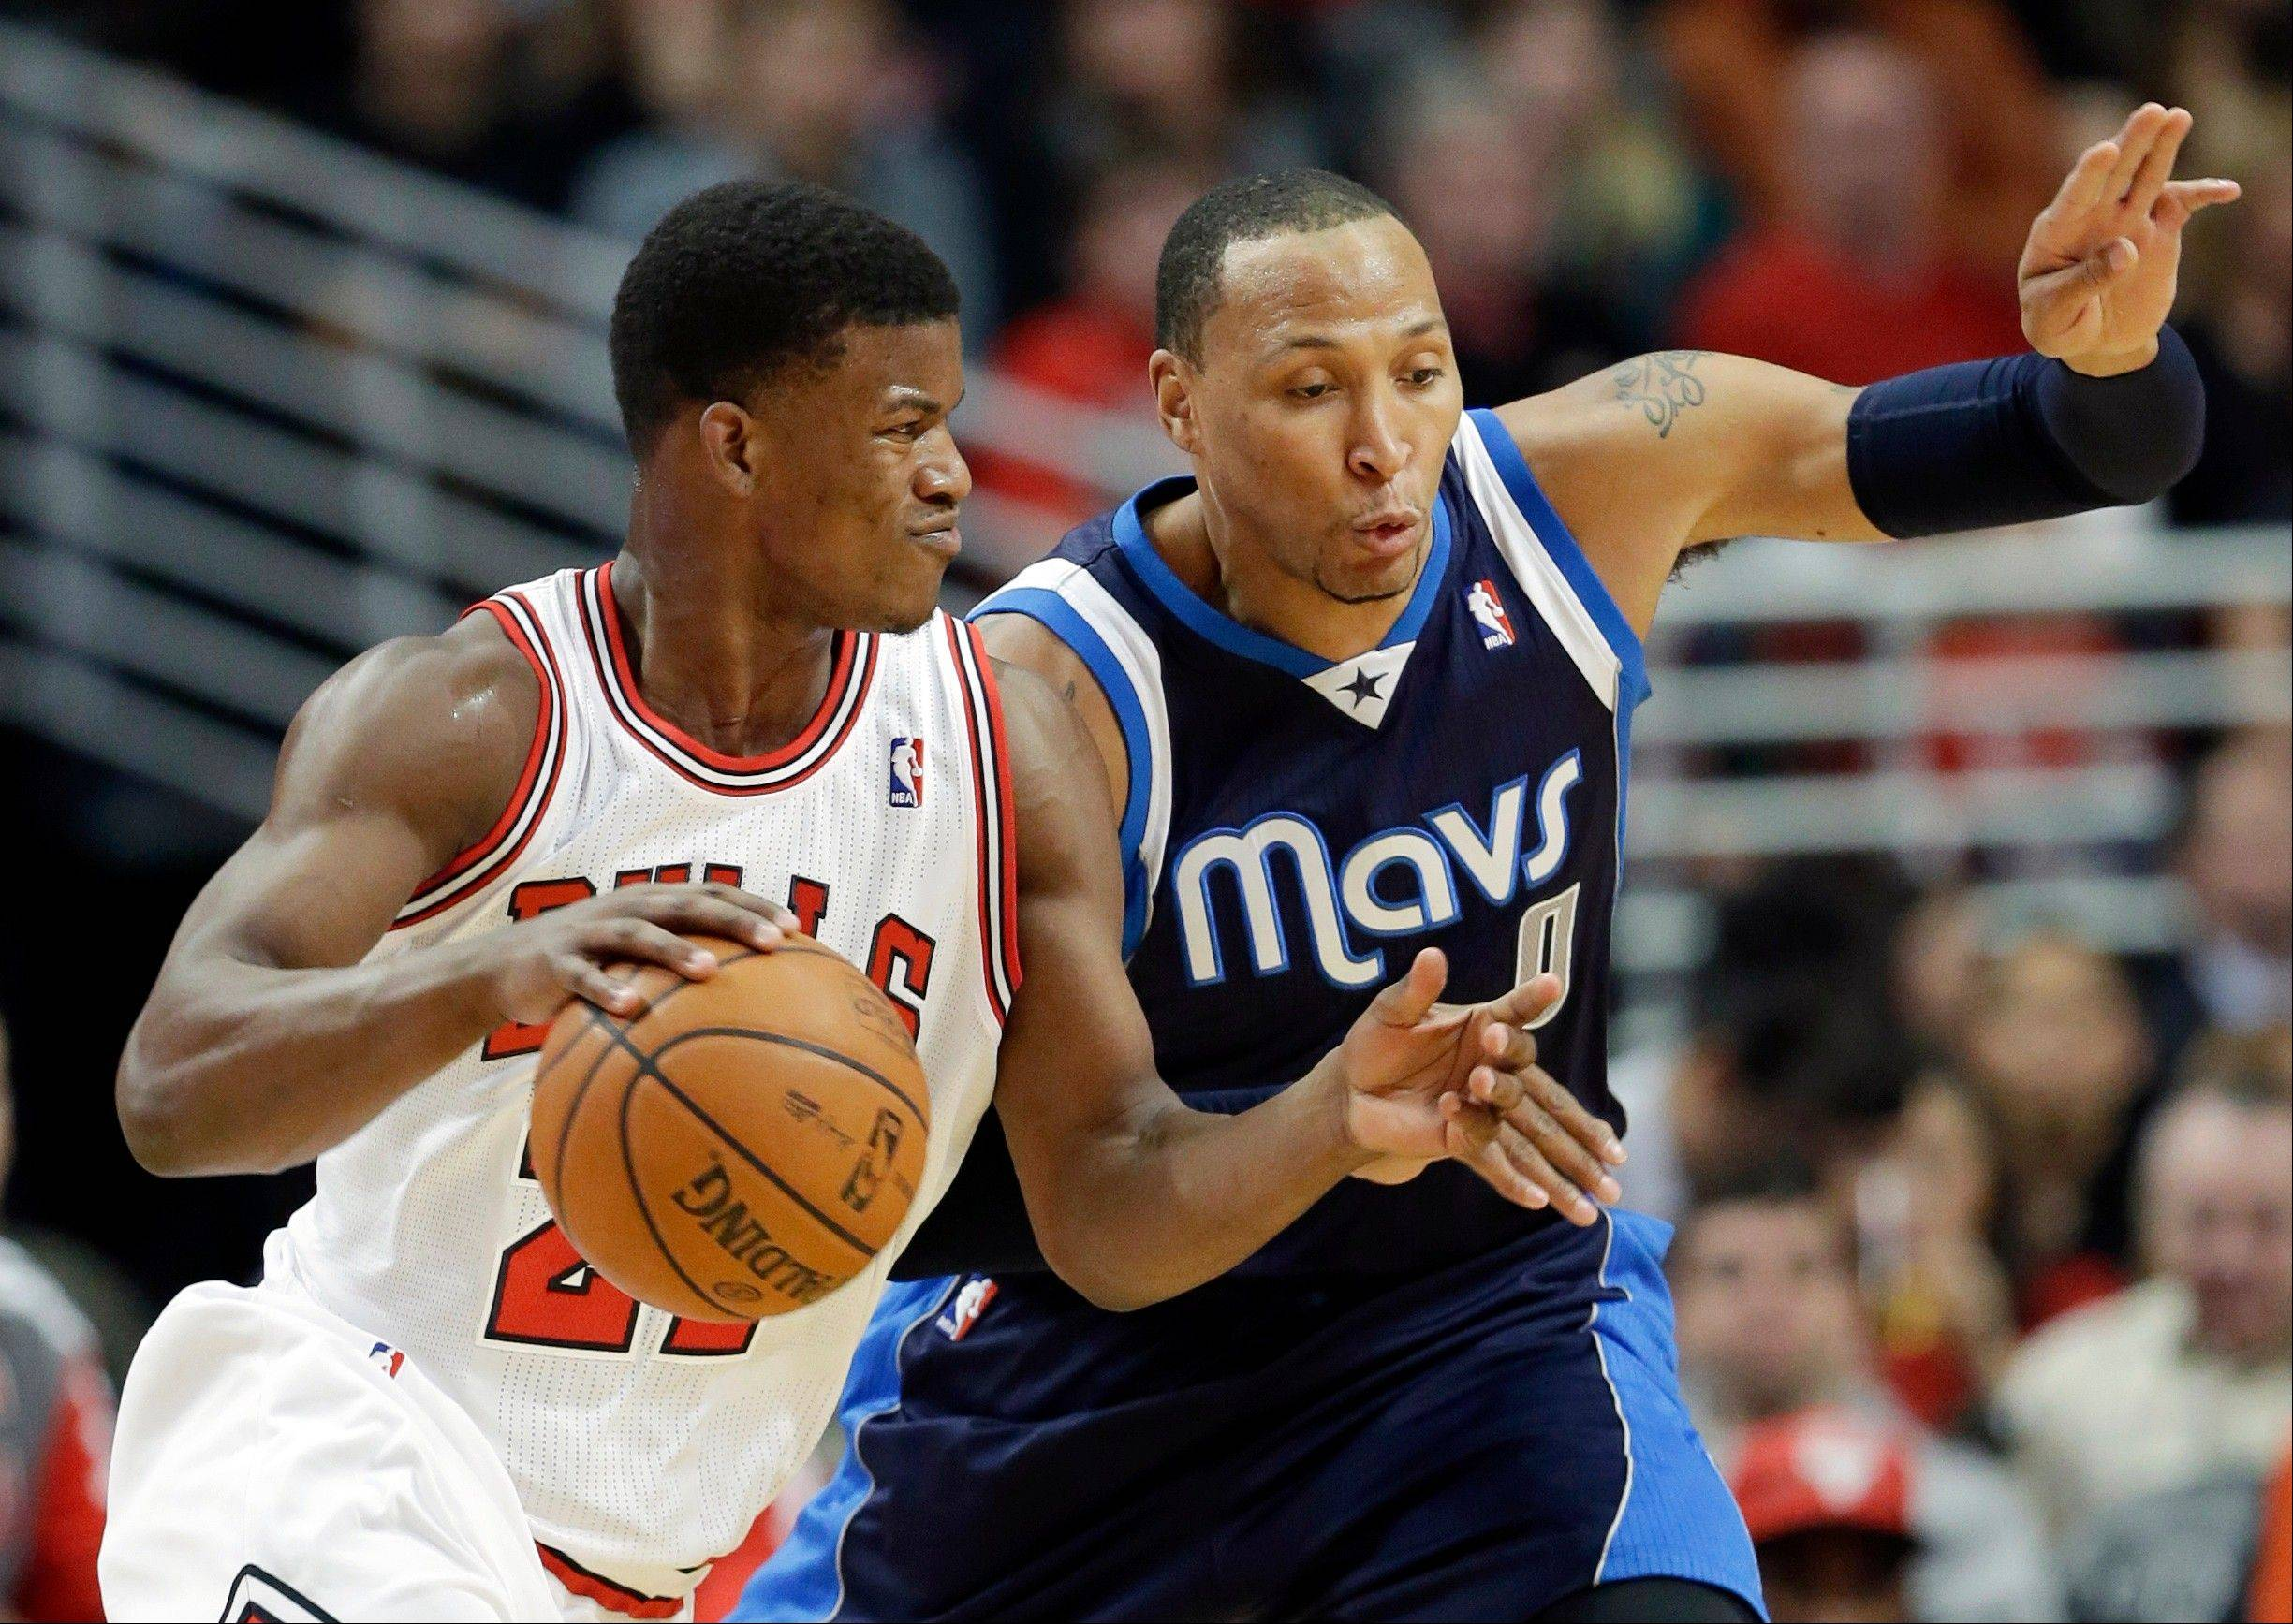 Bulls guard Jimmy Butler drives against Mavericks forward Shawn Marion on Saturday. Butler aggravated a turf toe injury in the loss but says he'll be ready to play Monday in Memphis.